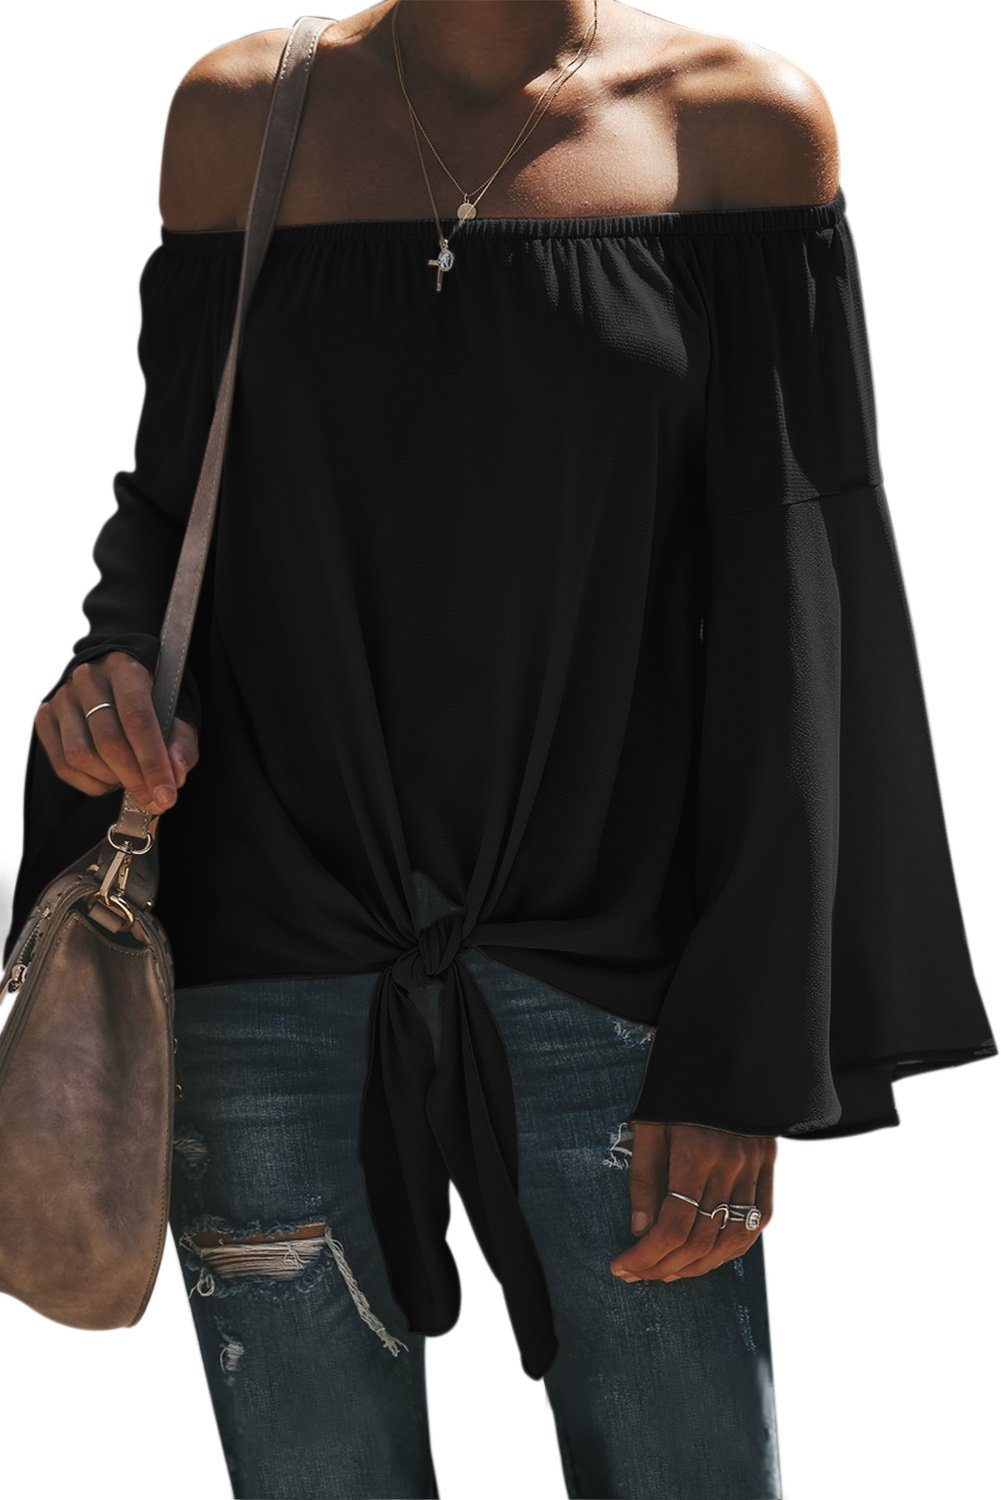 Black Off The Shoulder Bell Sleeve Tie Blouse